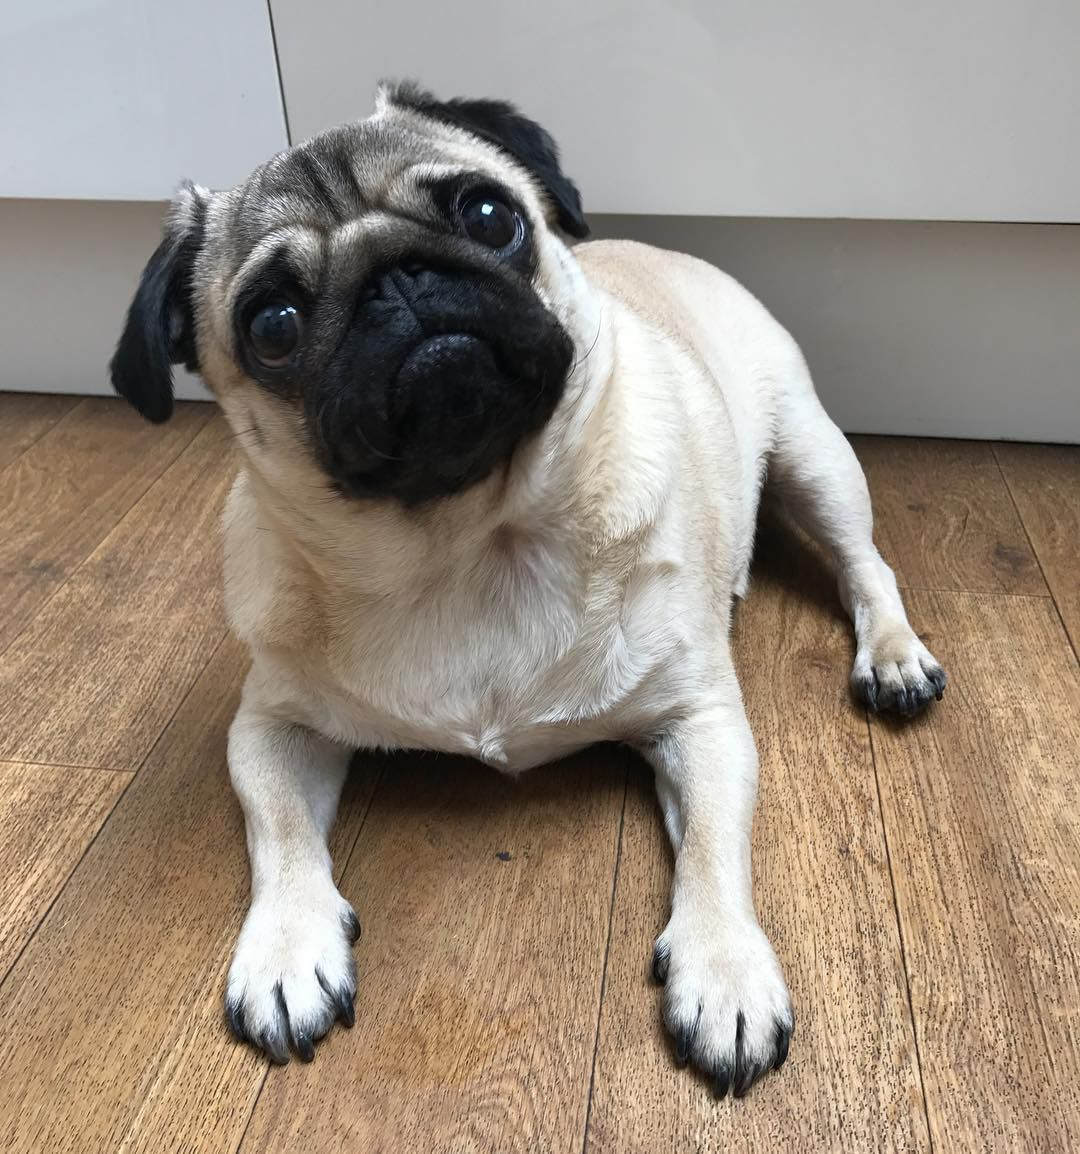 When you're on day 1 of the new diet but someone suggests pizza  #puglife